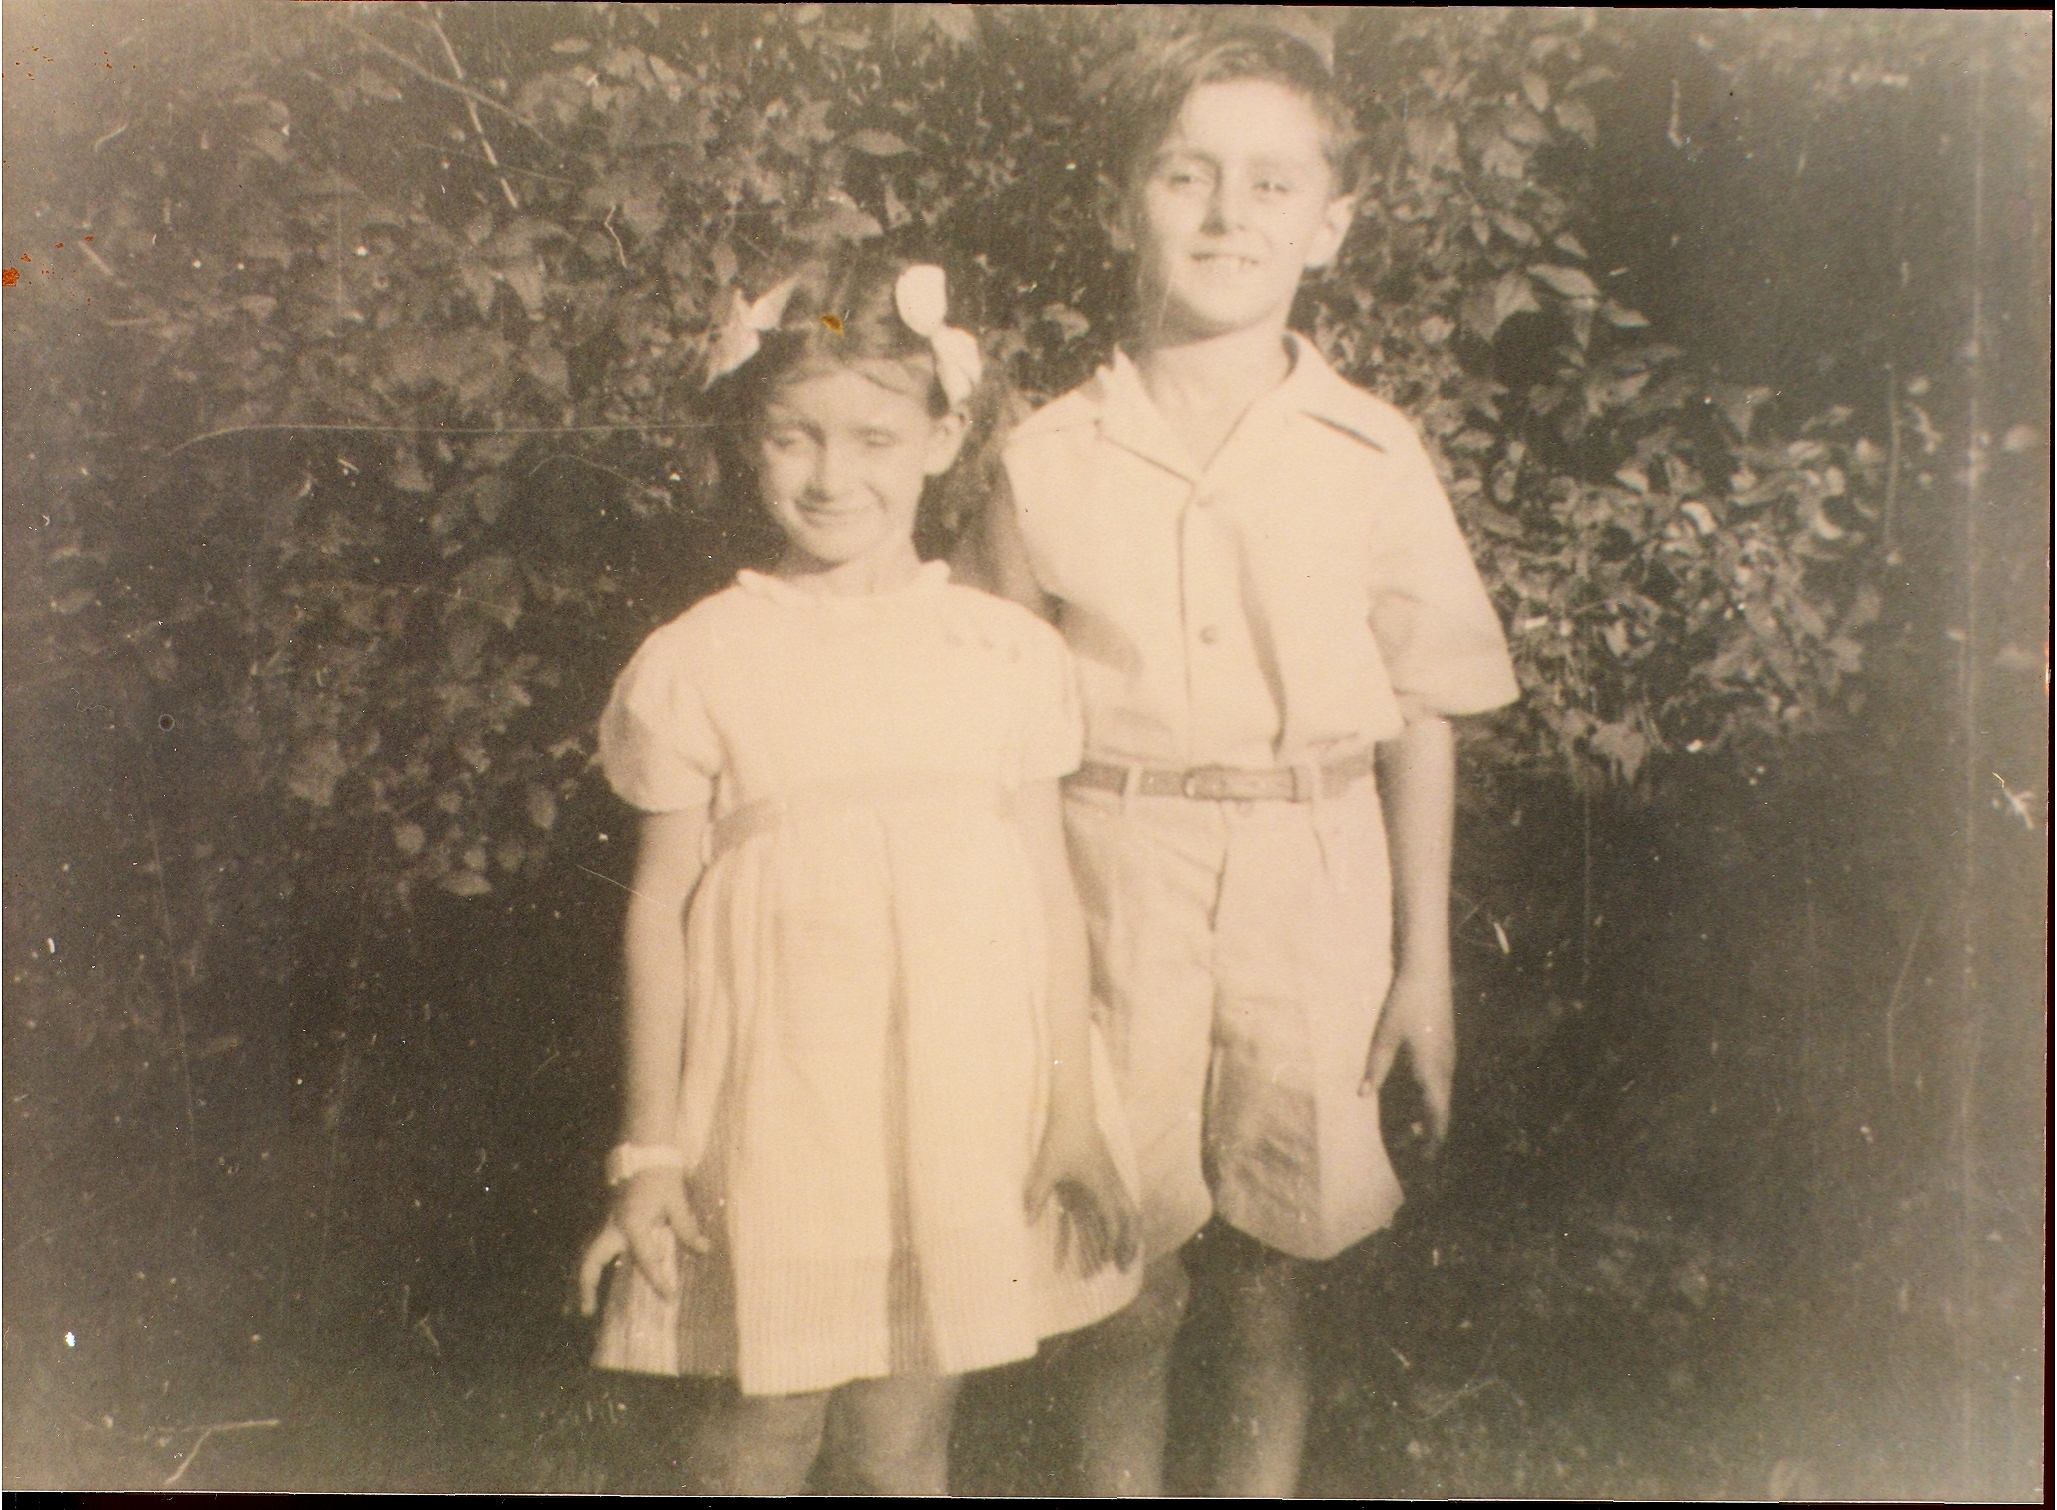 Beverly Ann Rudolph and her brother John Mason Rudolph Jr.